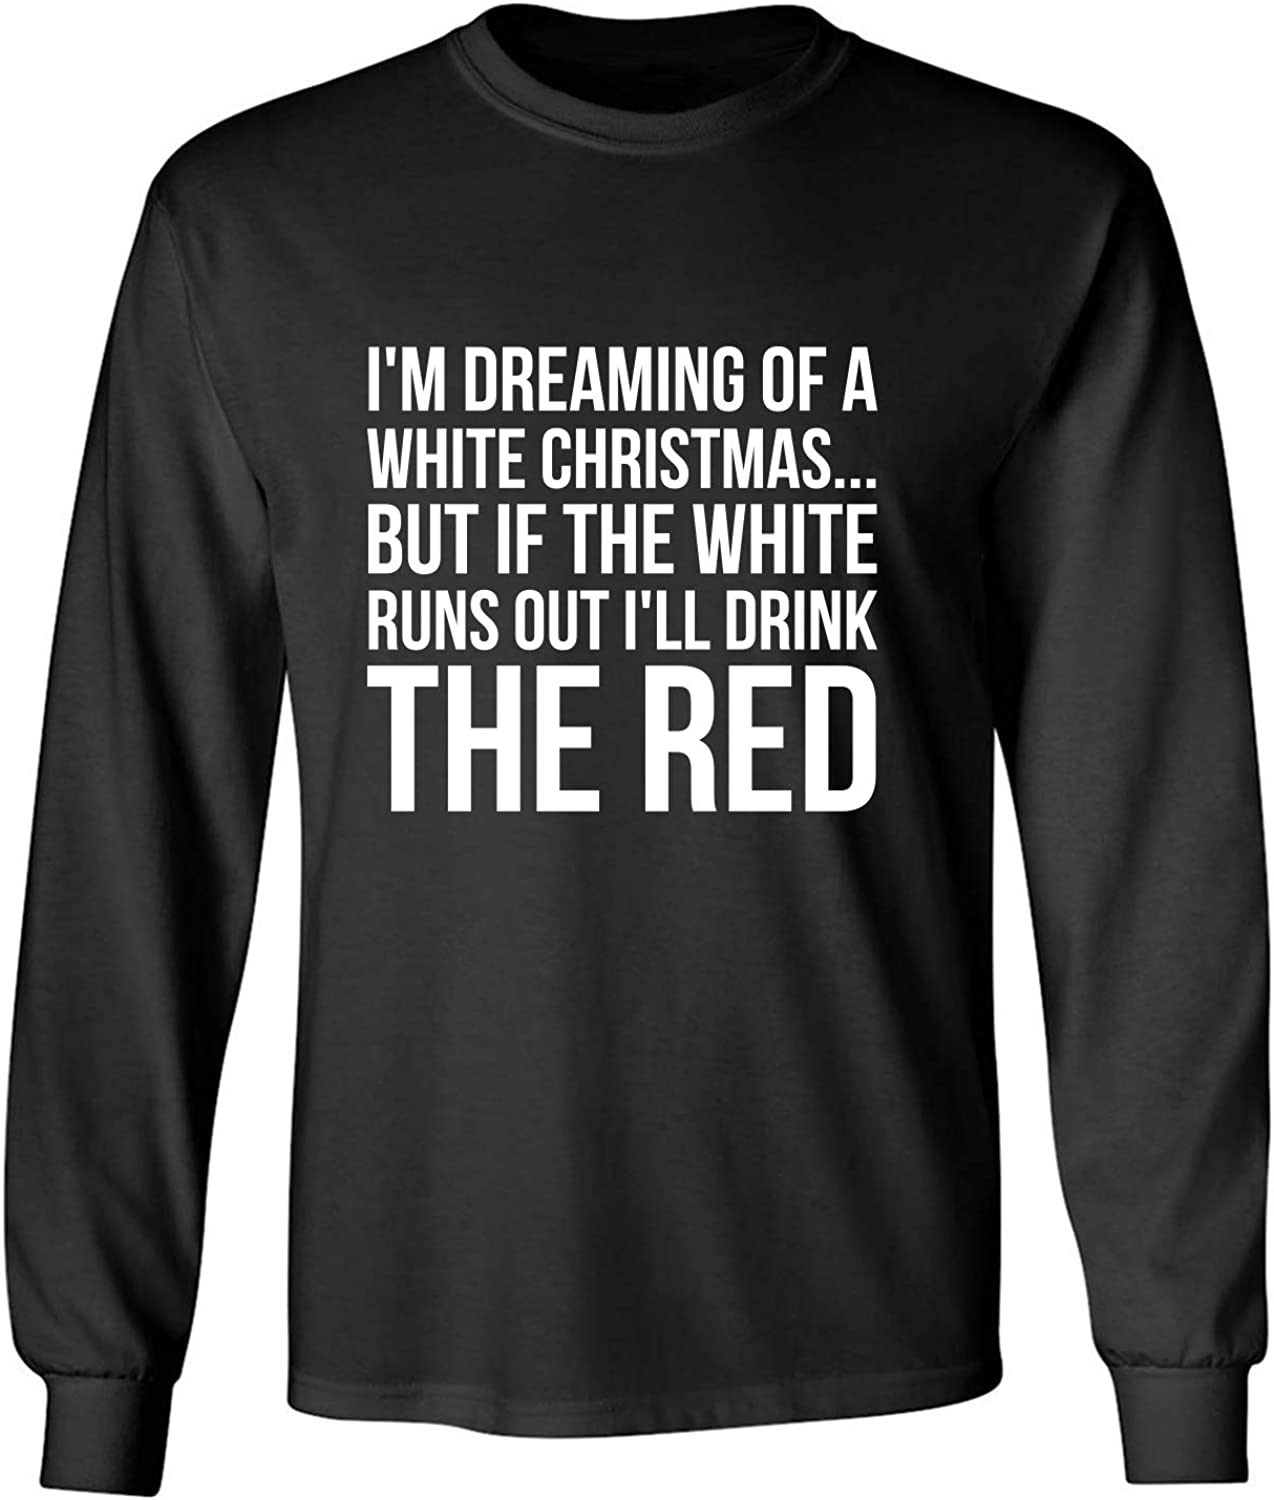 I'm Dreaming of A White Christmas Adult Long Sleeve T-Shirt in Black - XXXXX-Large